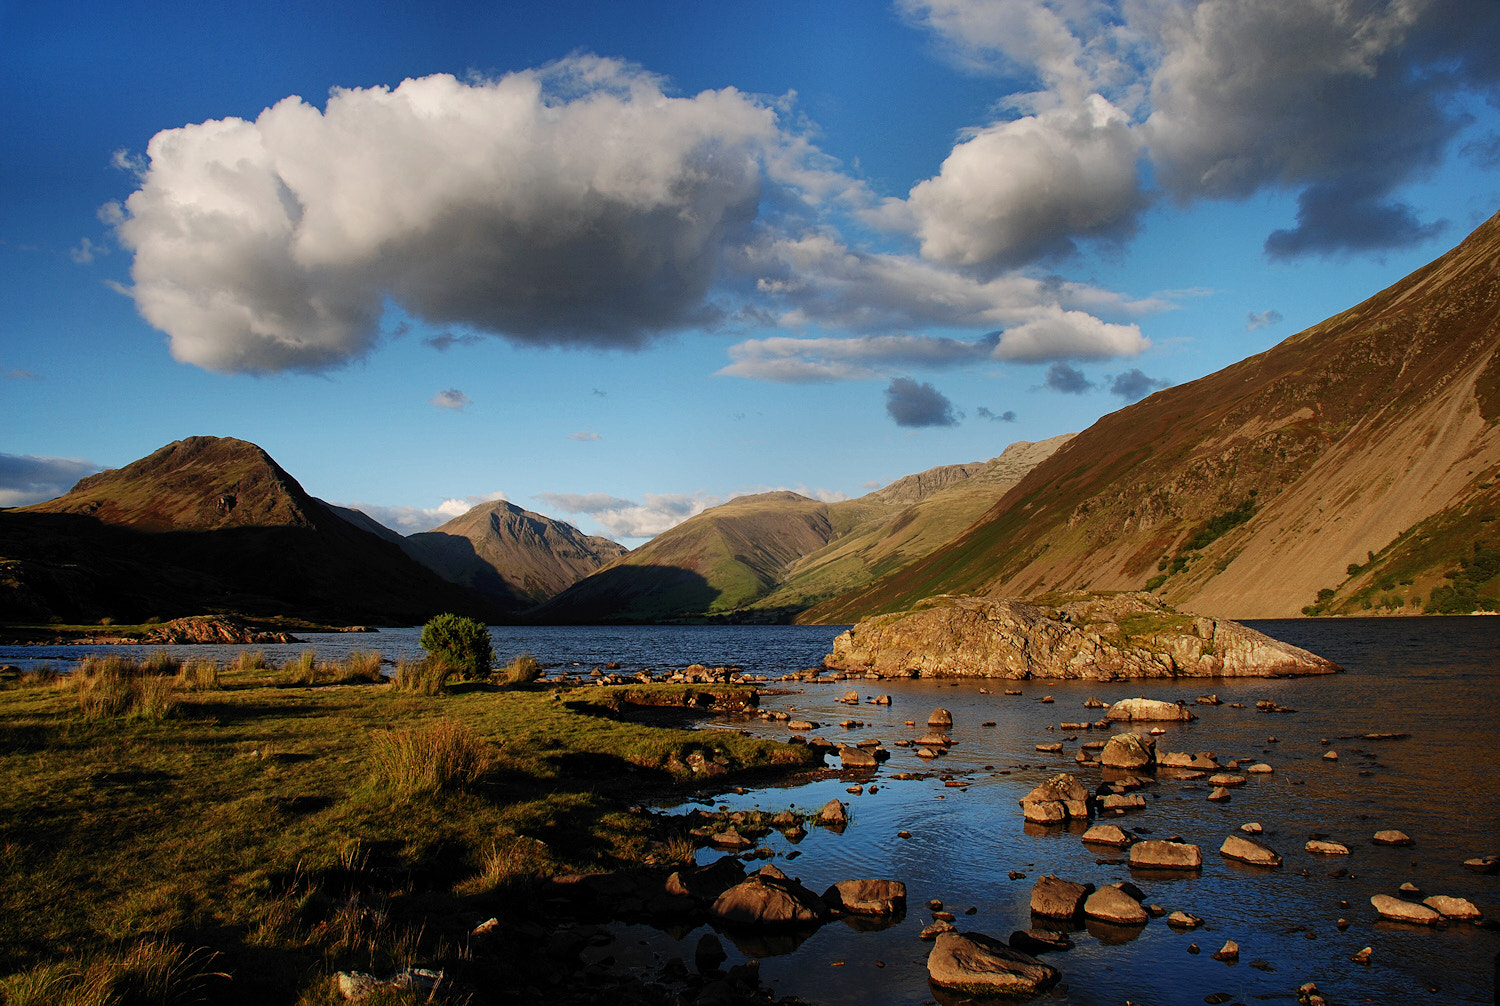 Photograph Wastwater Evening by Terry Cowlishaw on 500px